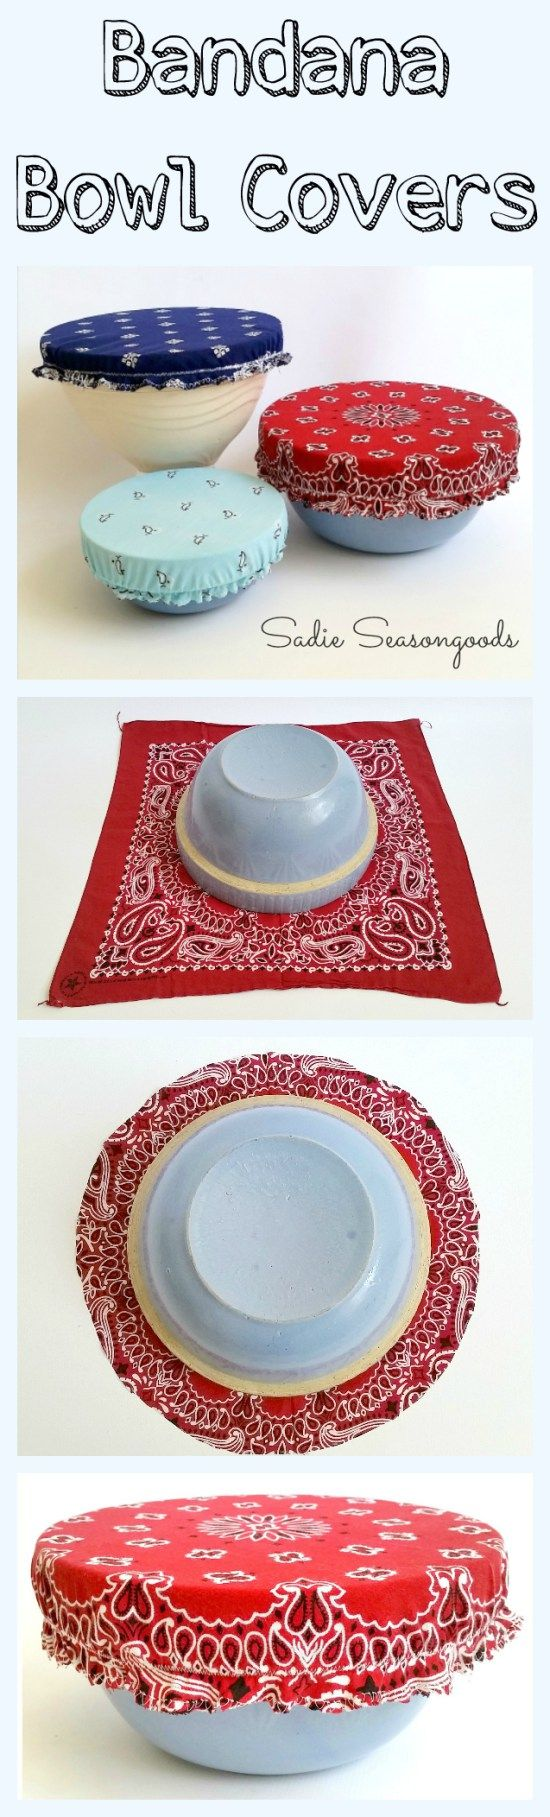 Just in time for July 4th and summer BBQs...DIY reusable, washable bowl covers from bandanas! Your lidless mixing bowl gets some patriotic panache with a vintage bandana bowl cover, which will keep the bugs out when sitting on the picnic table! Such a fun way to repurpose a bandana...easy to make and oh so pretty! Perfect upcycle project from #SadieSeasongoods / www.sadieseasongoods.com